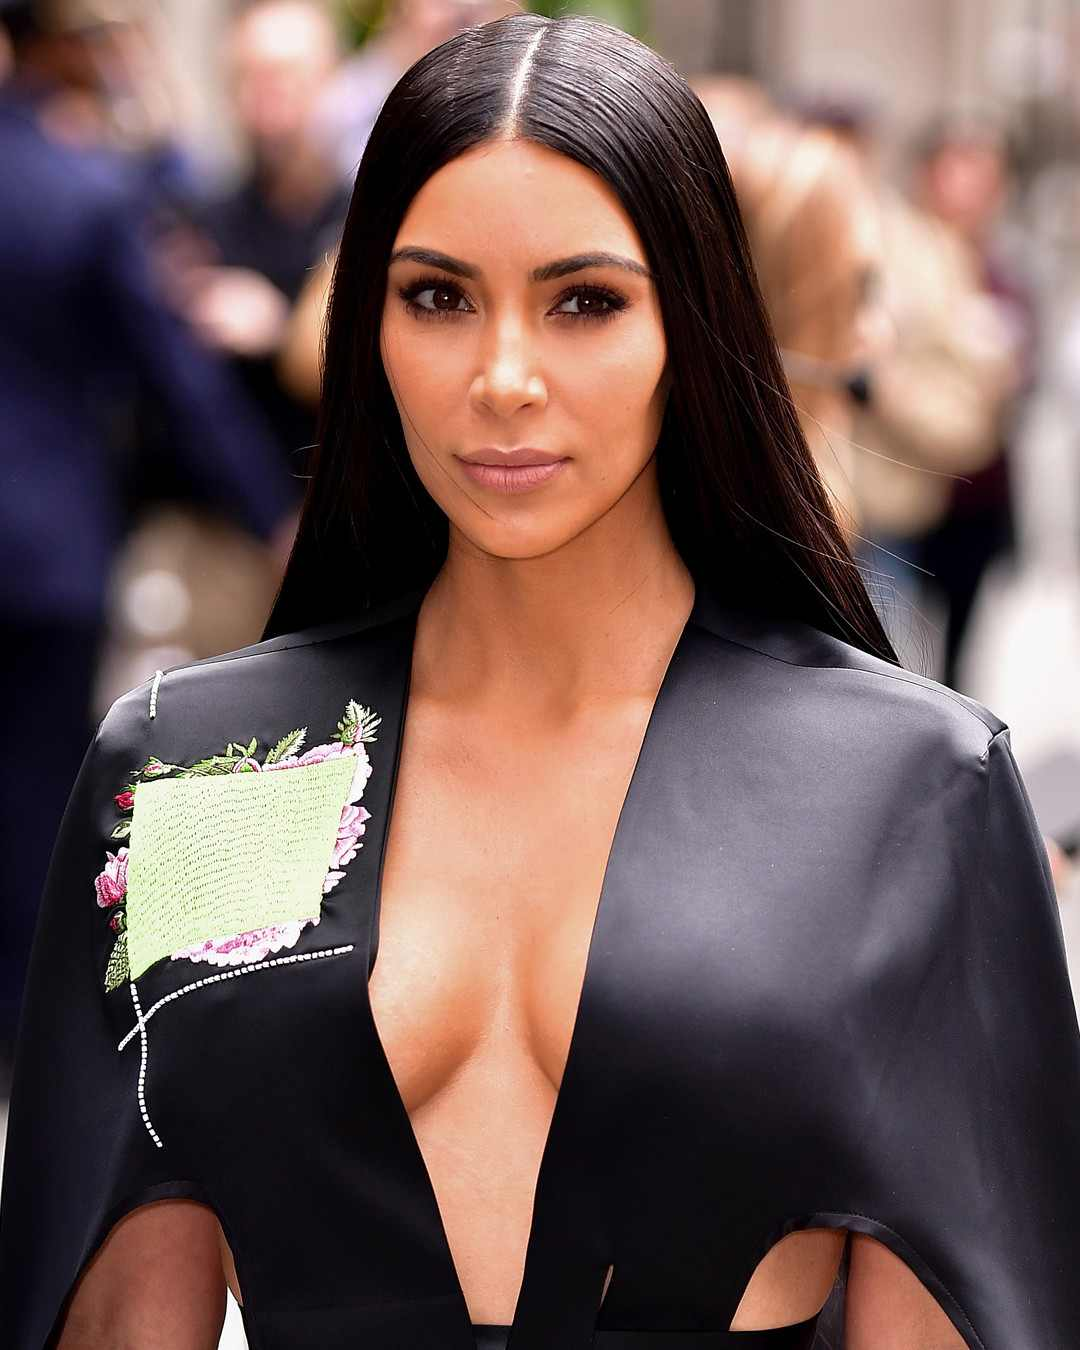 Kim Kardashian in birthday suit again